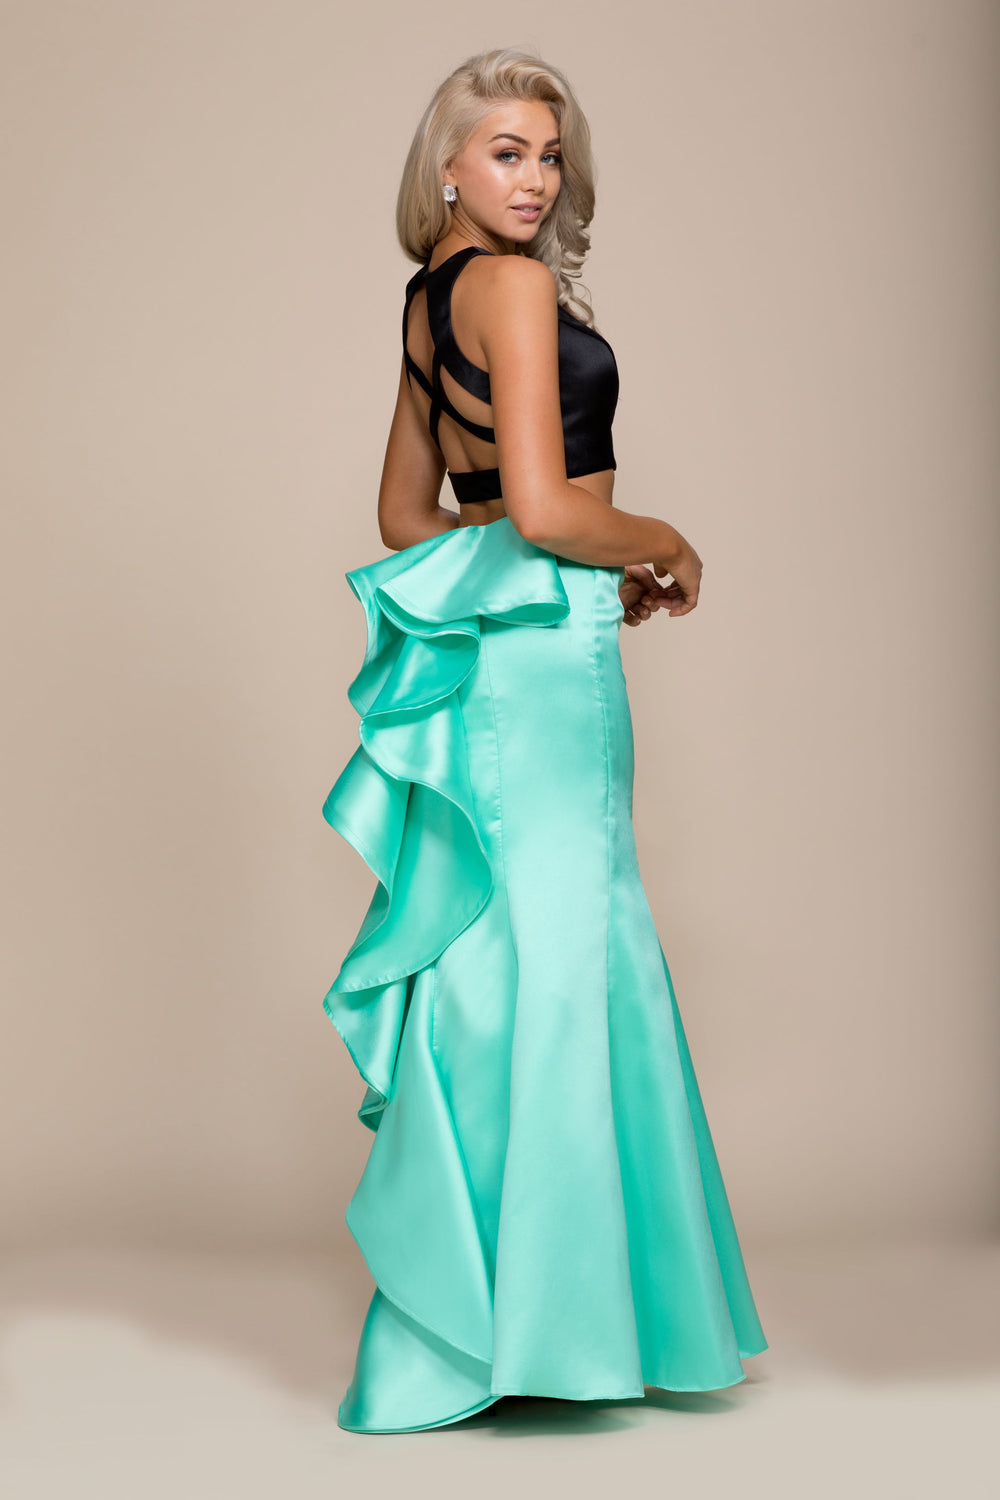 TWO-PIECE JEWEL TRUMPET MERMAID PROM DRESS WITH RUFFLE BACK 8292 BY NARIANNA